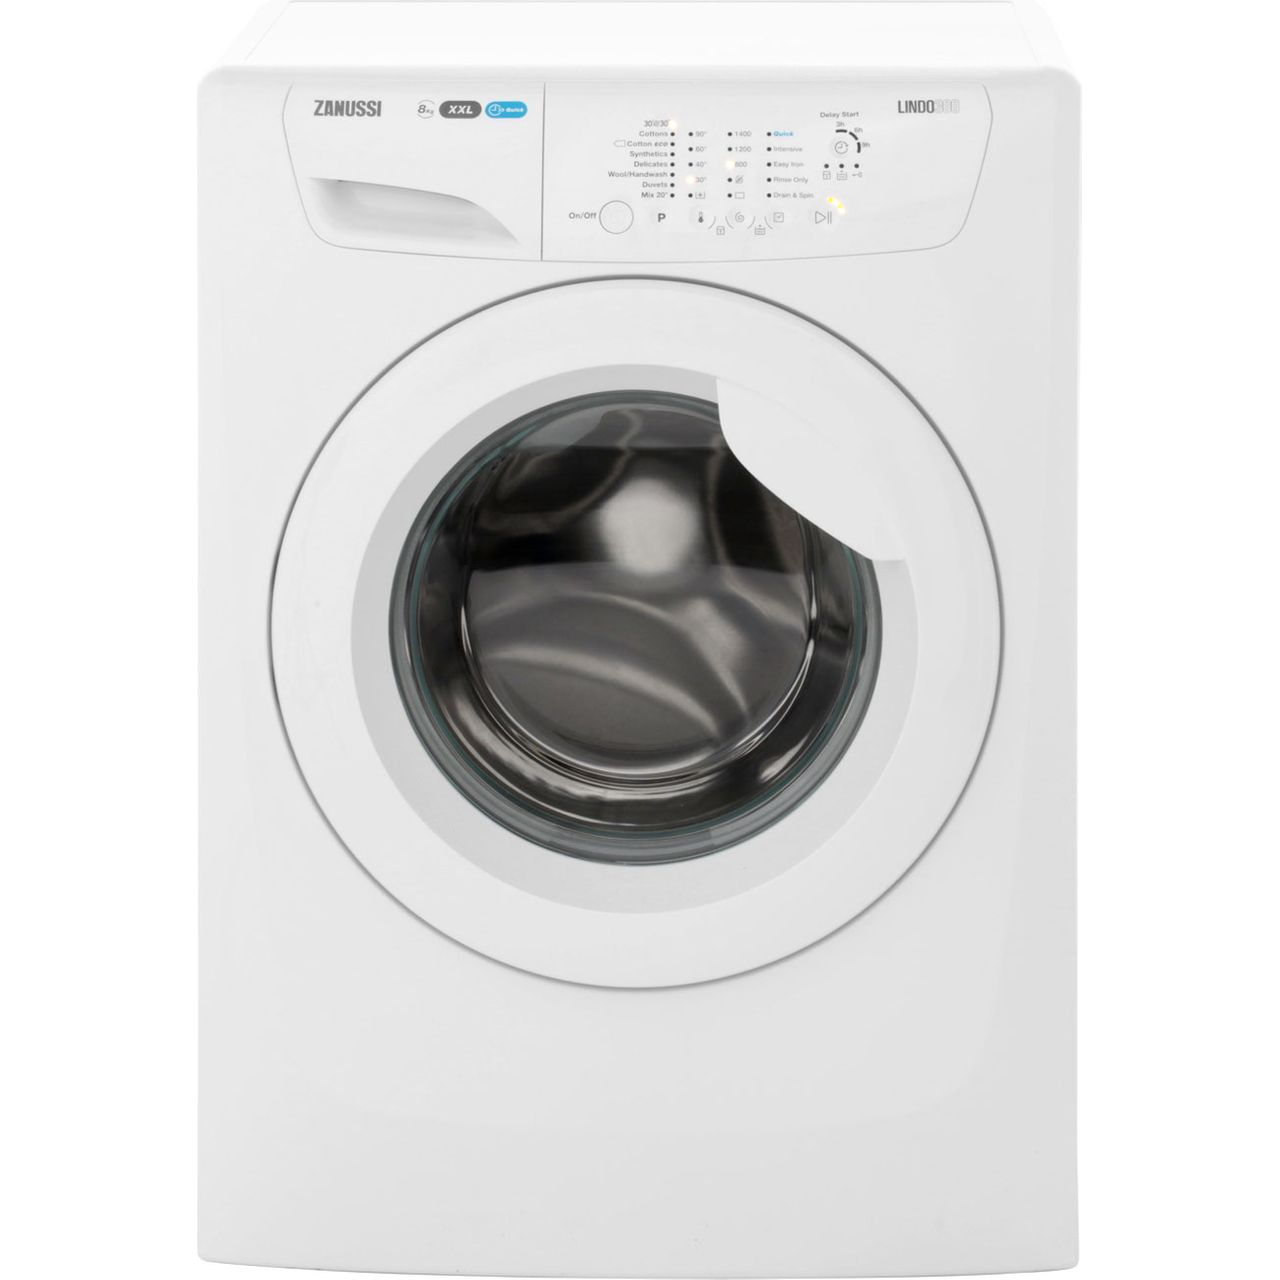 Zanussi Washing Machine Shop For Cheap Washing Machines